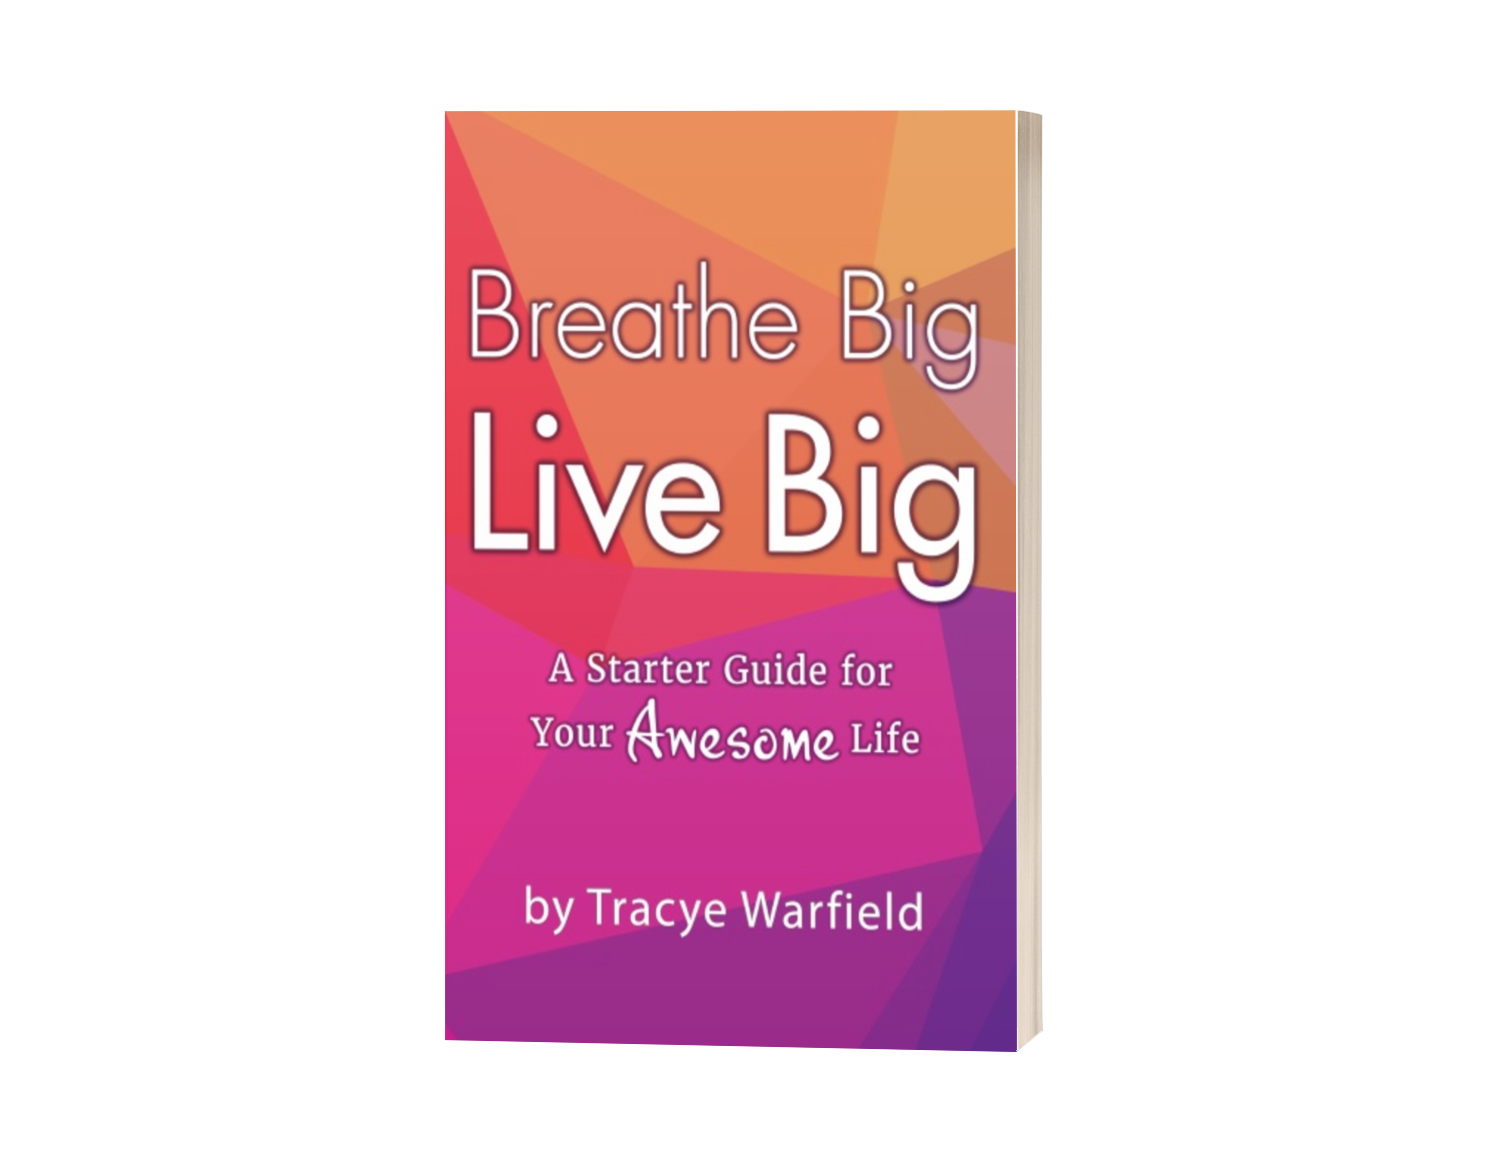 Breathe Big Live Big A Starter Guide For Your Awesome Life